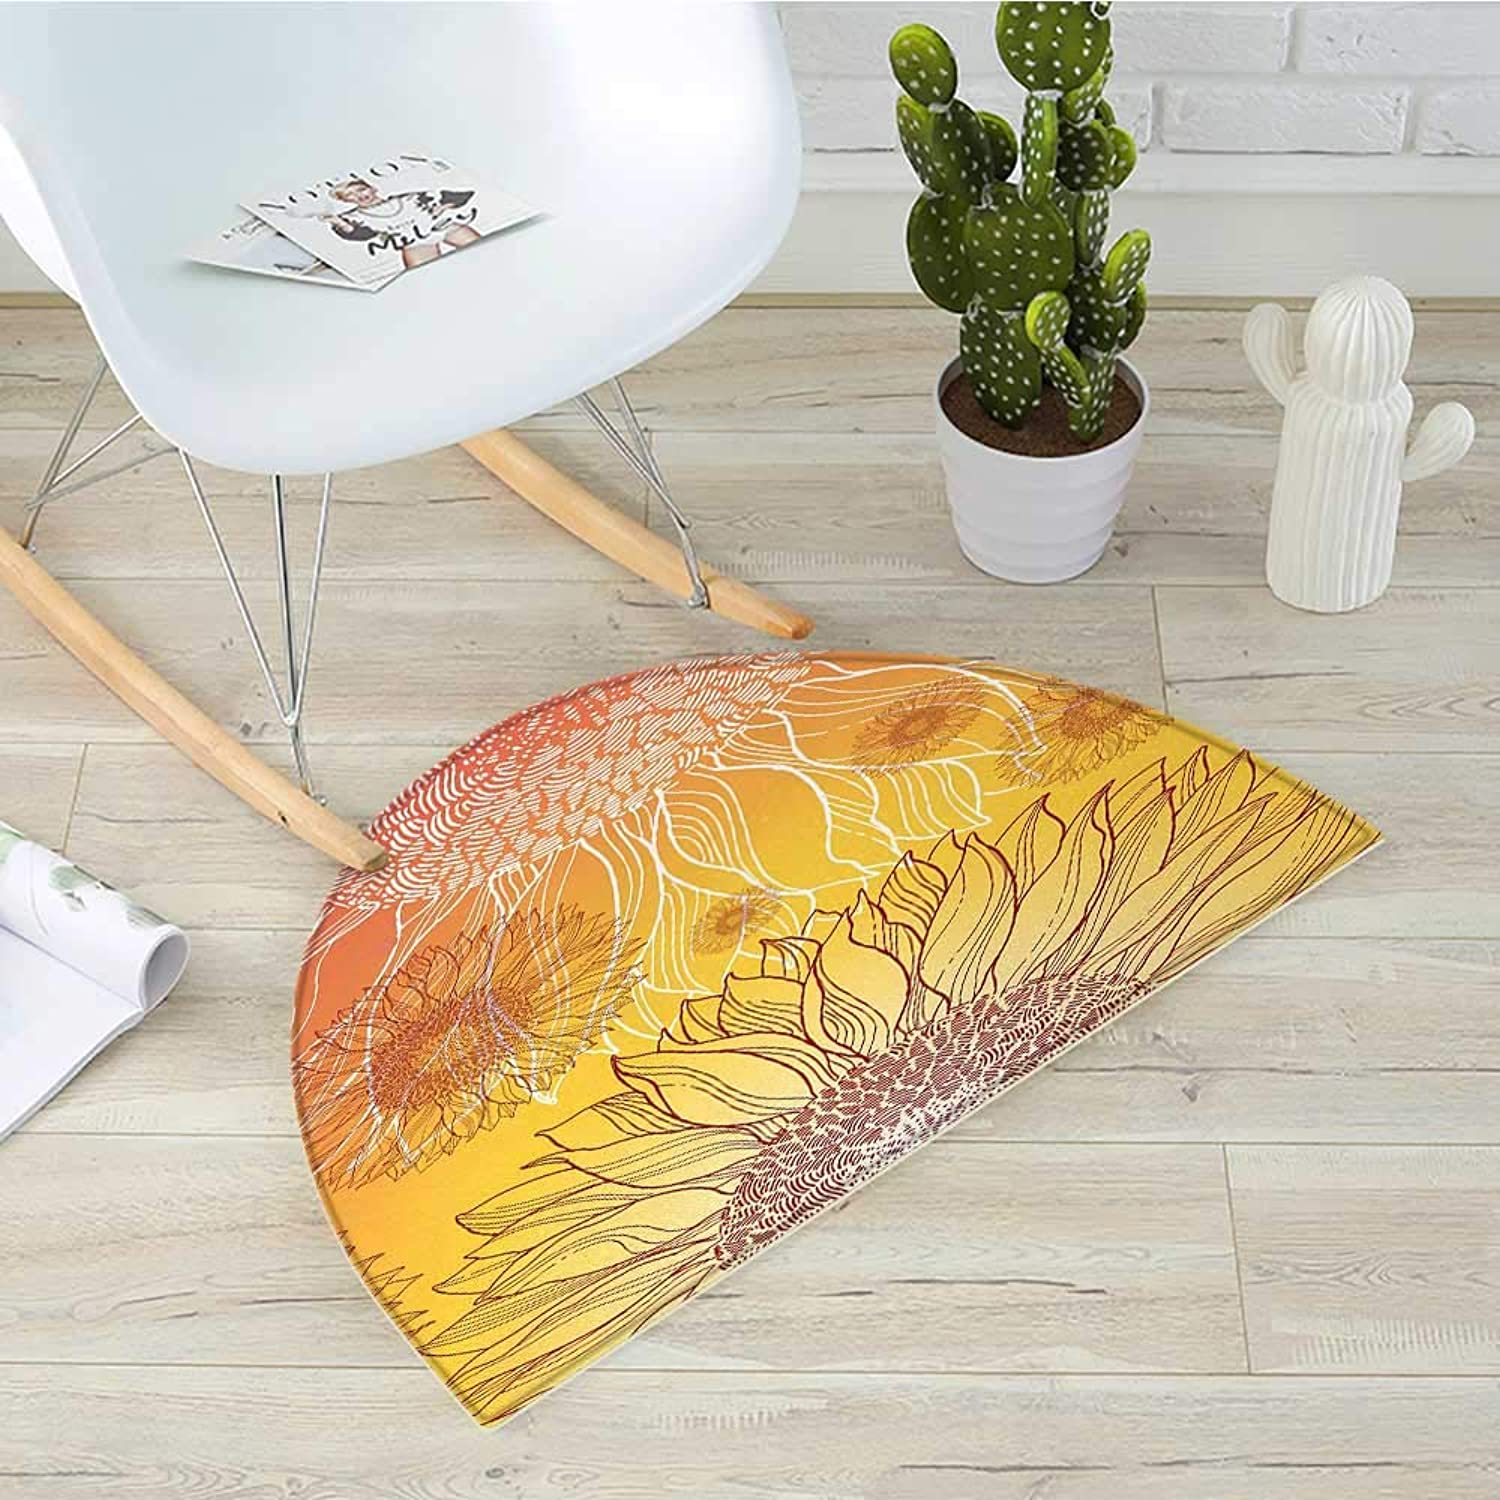 Botanical Semicircular CushionSunflowers in Warm colors Doodle Agriculture Design Blooming Plants Entry Door Mat H 43.3  xD 64.9  orange Yellow Burgundy